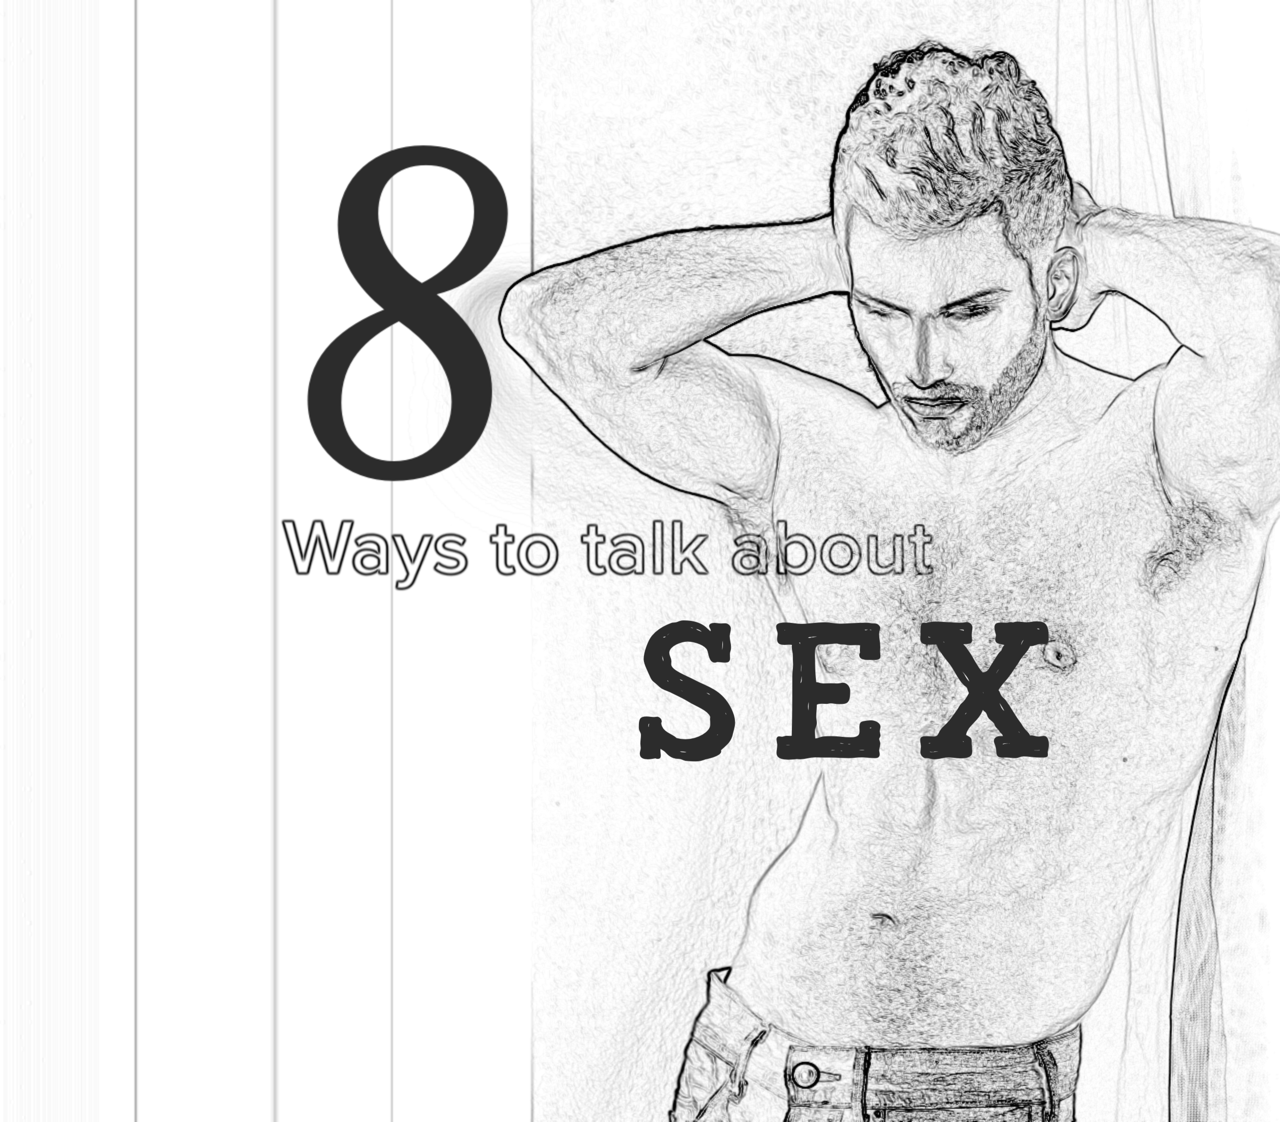 Talking about sex to your partner 10